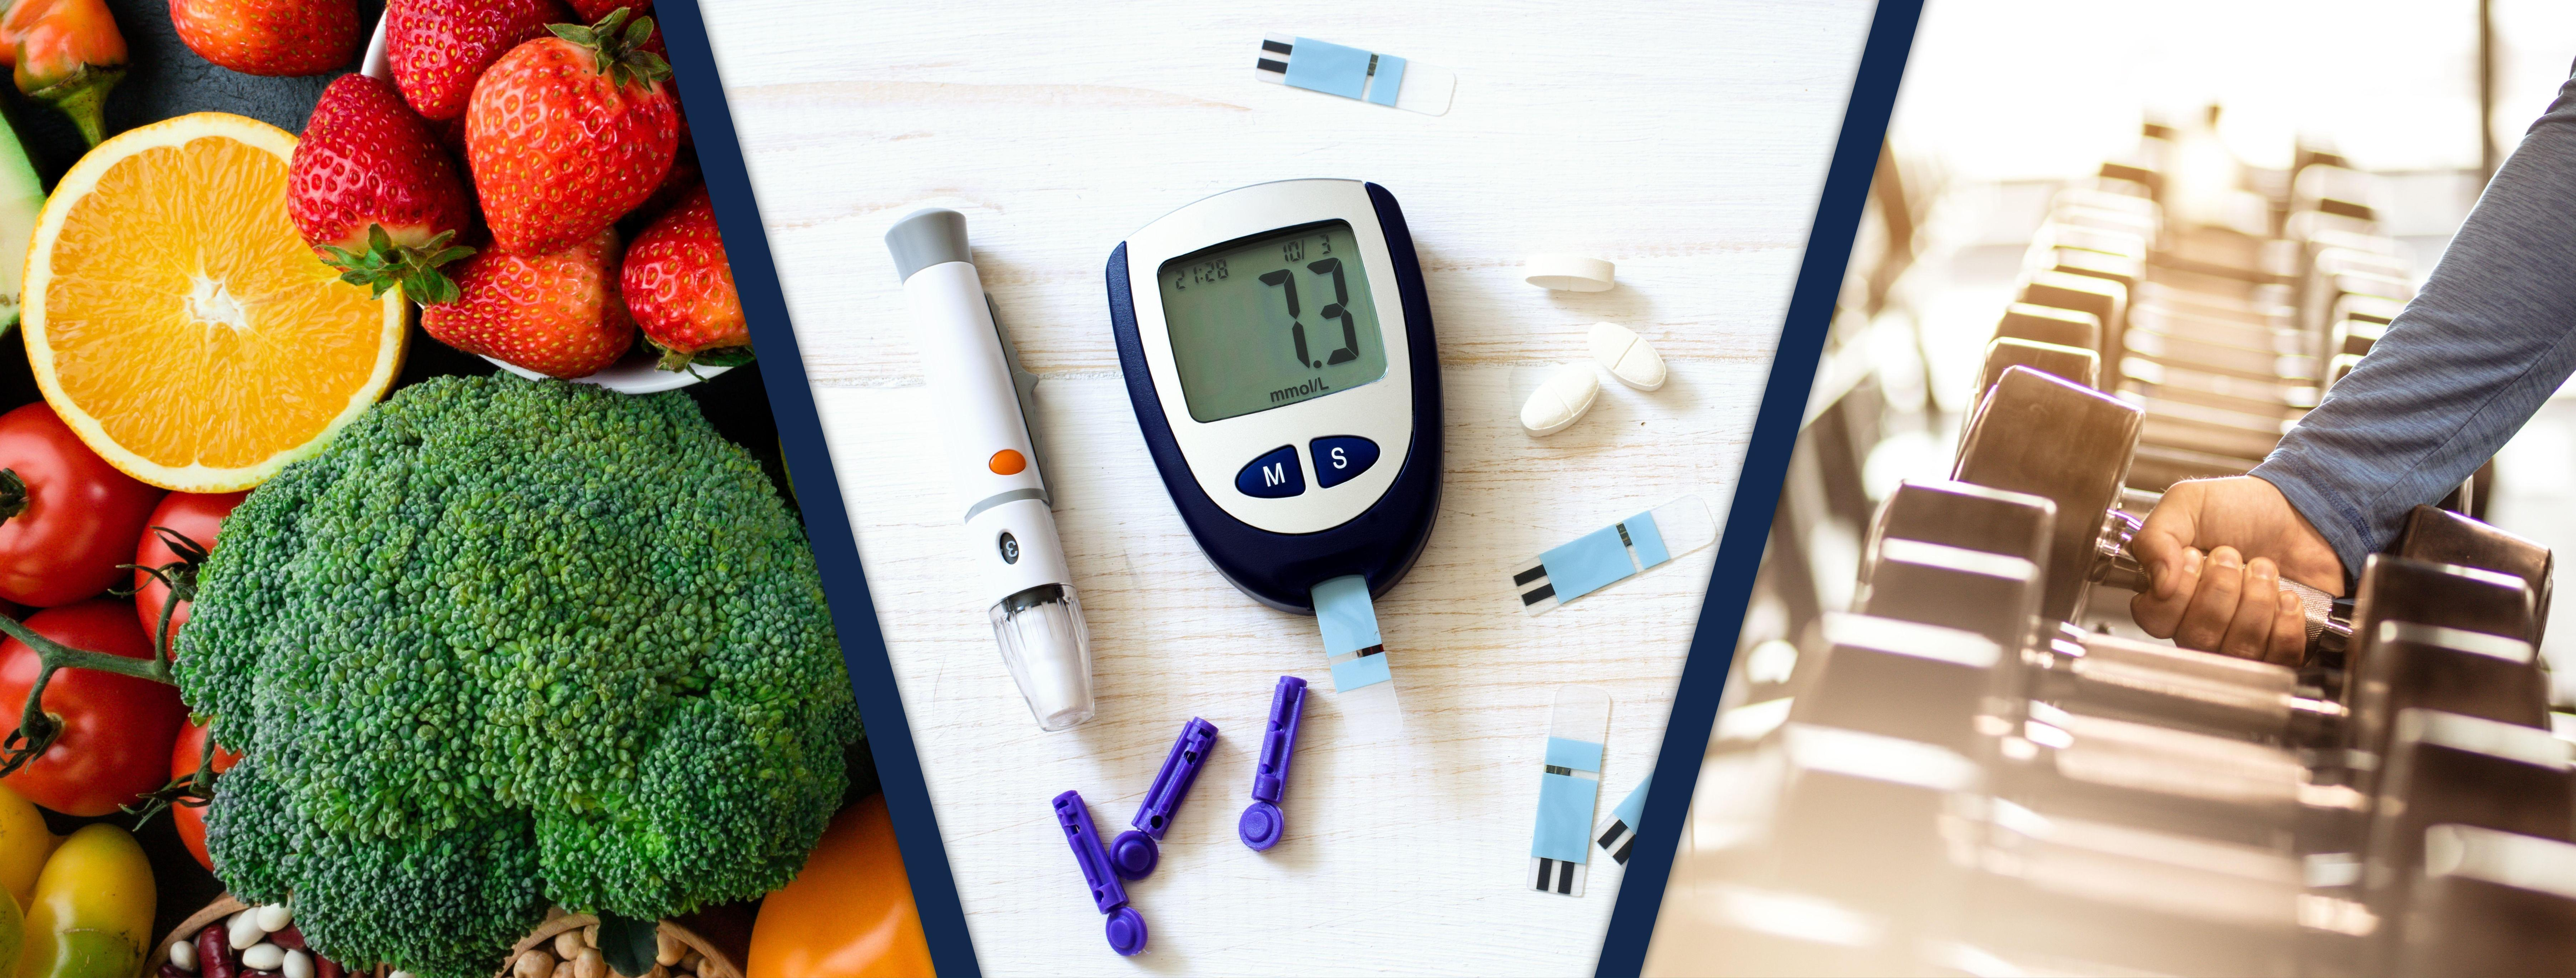 images of diabetes care